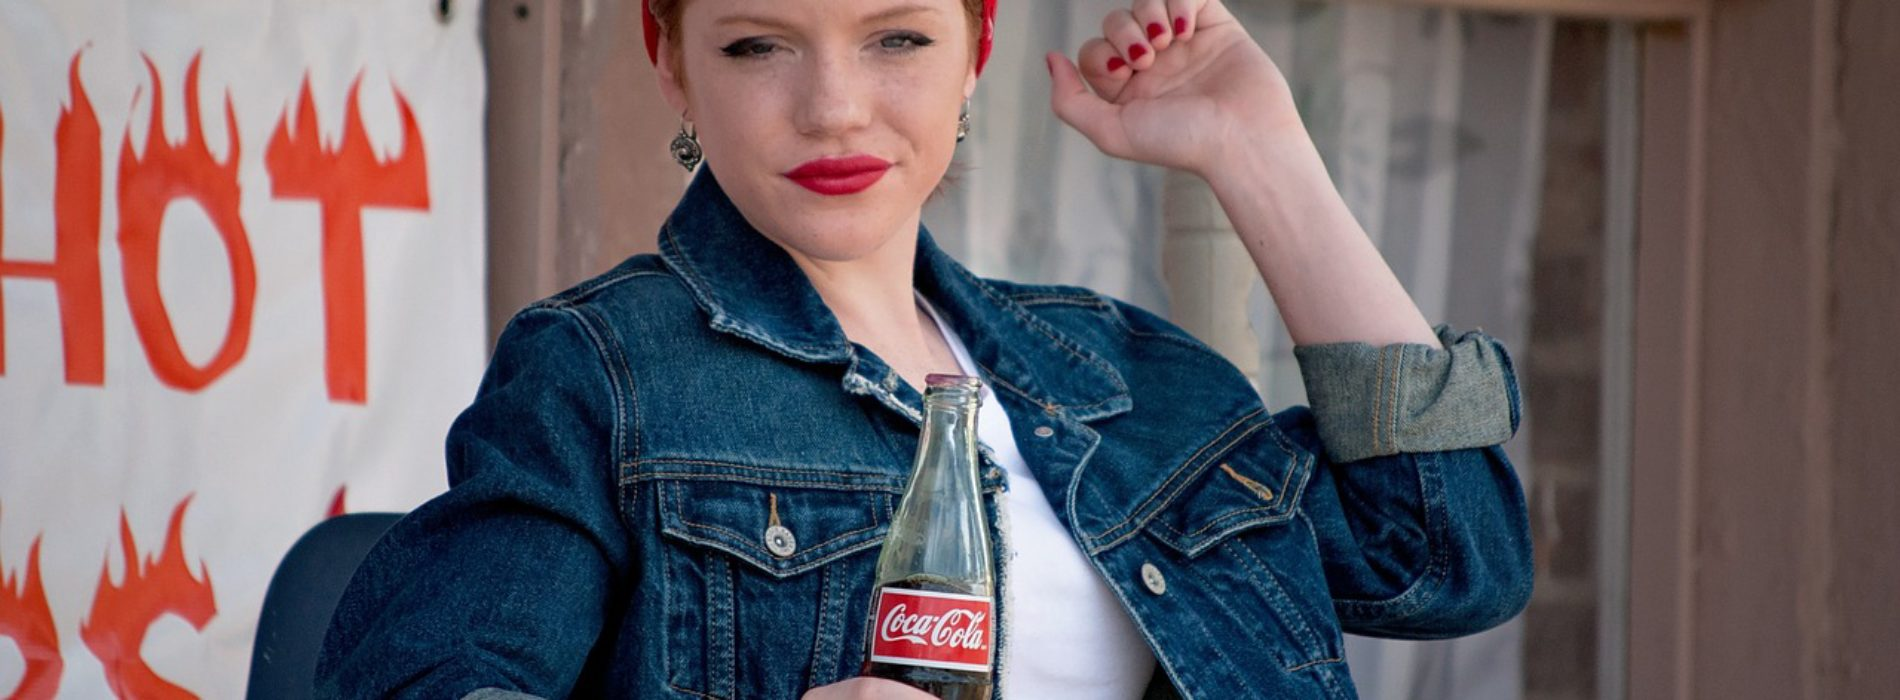 Ep 43: Could Air Drops of Blue Jeans and Coca-Cola Save the World?